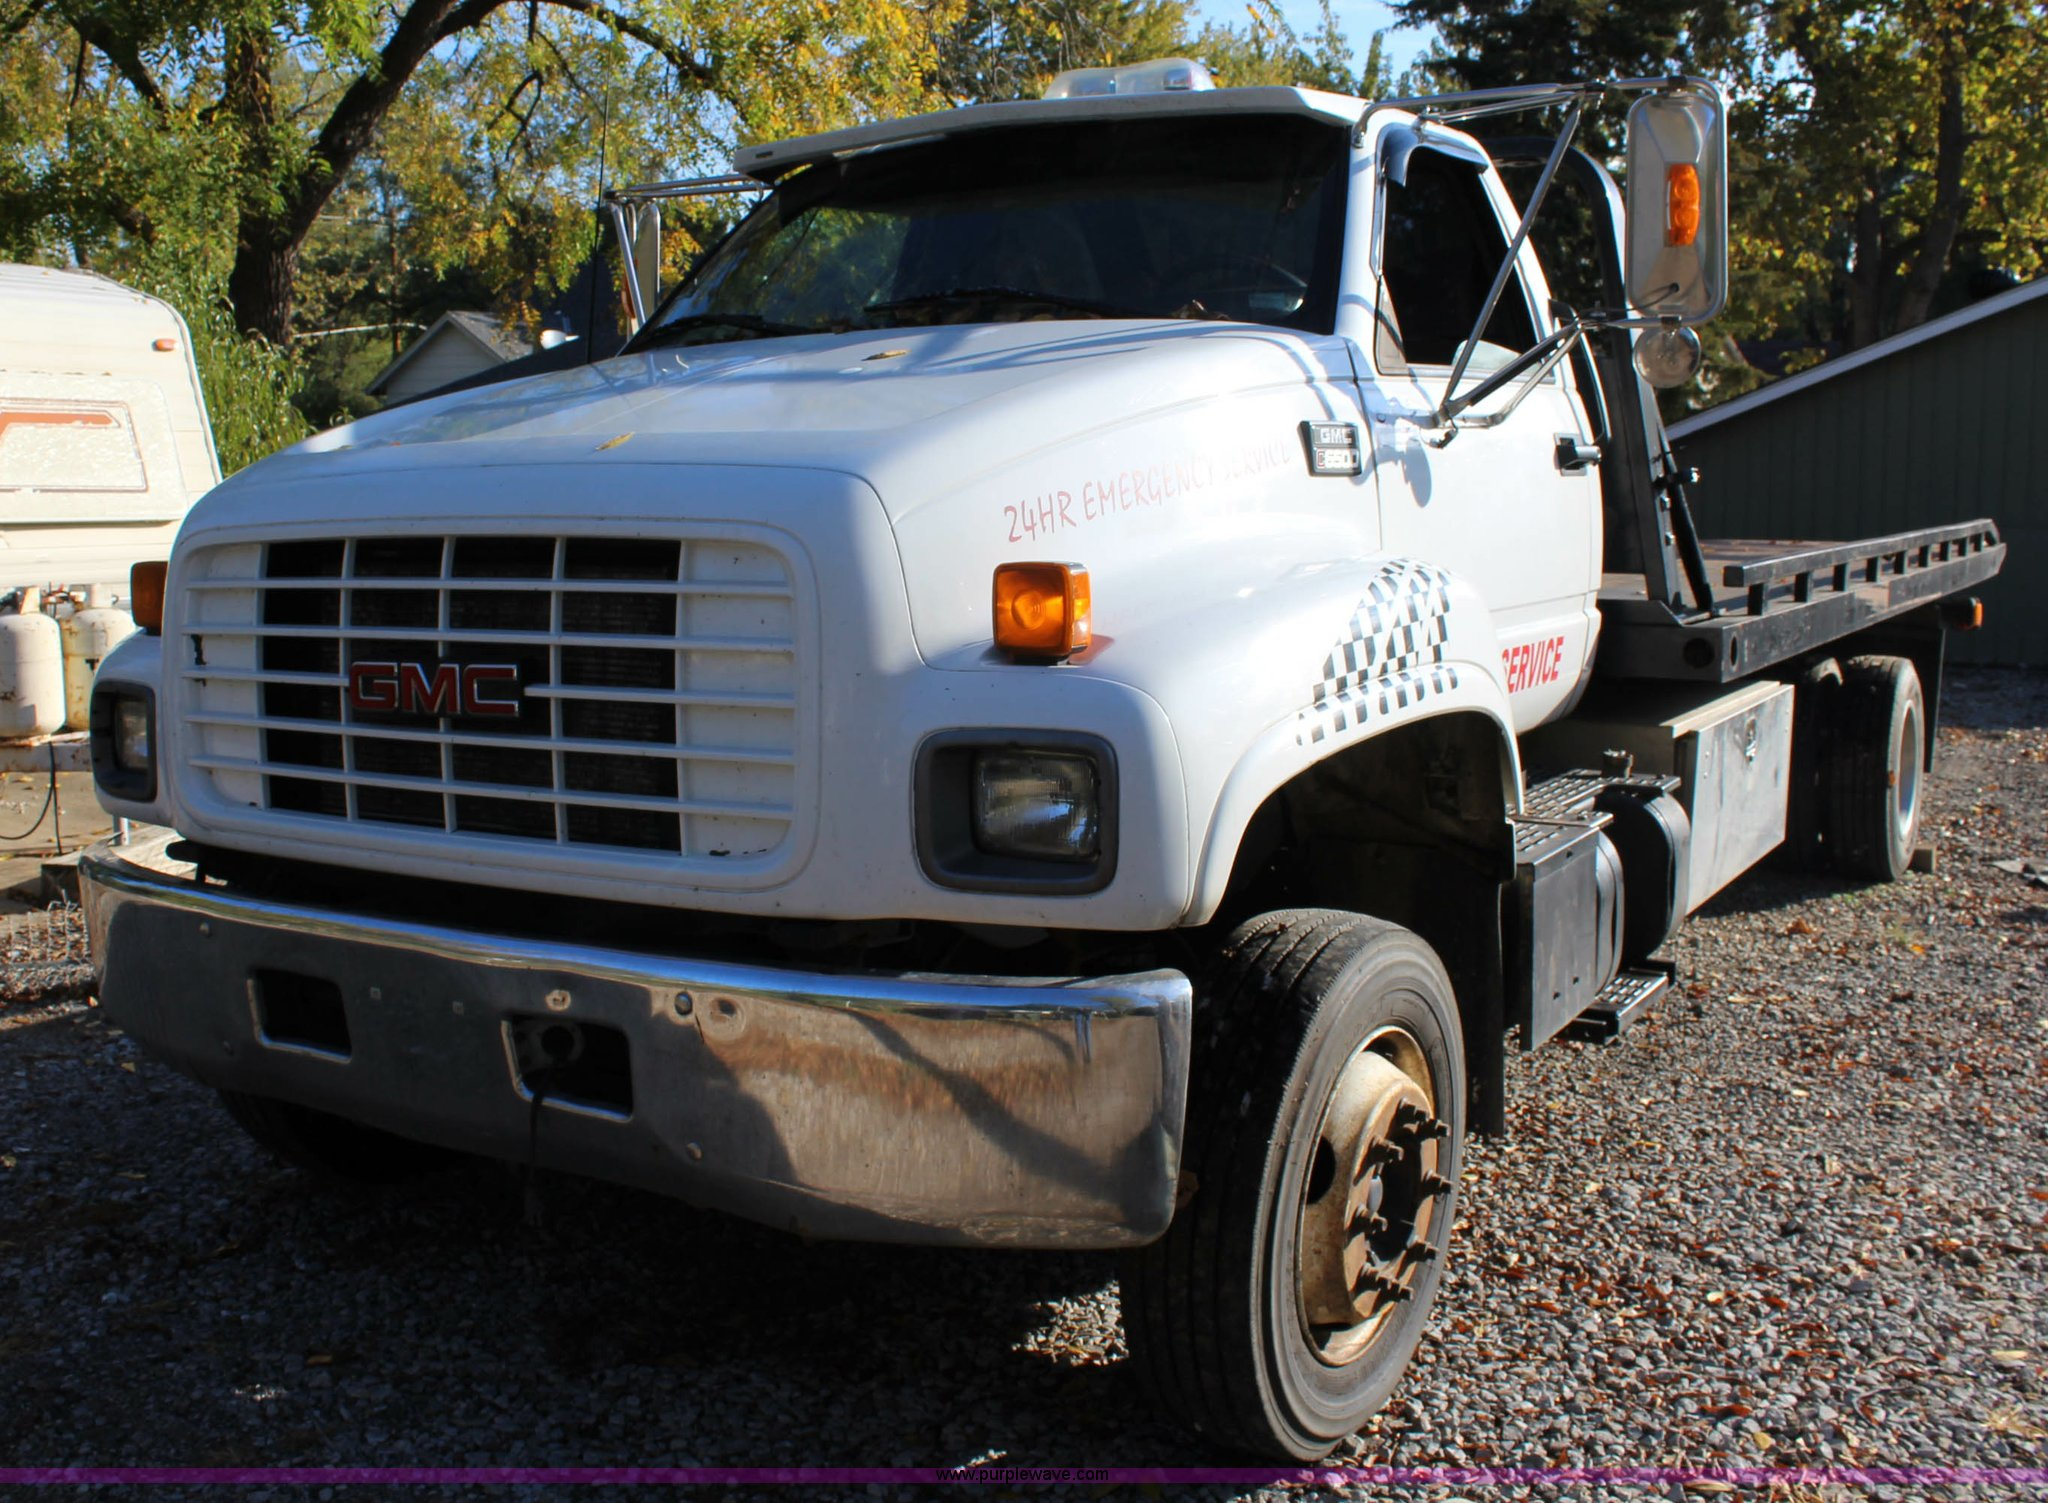 ... 1997 GMC C6500 rollback truck Full size in new window ...